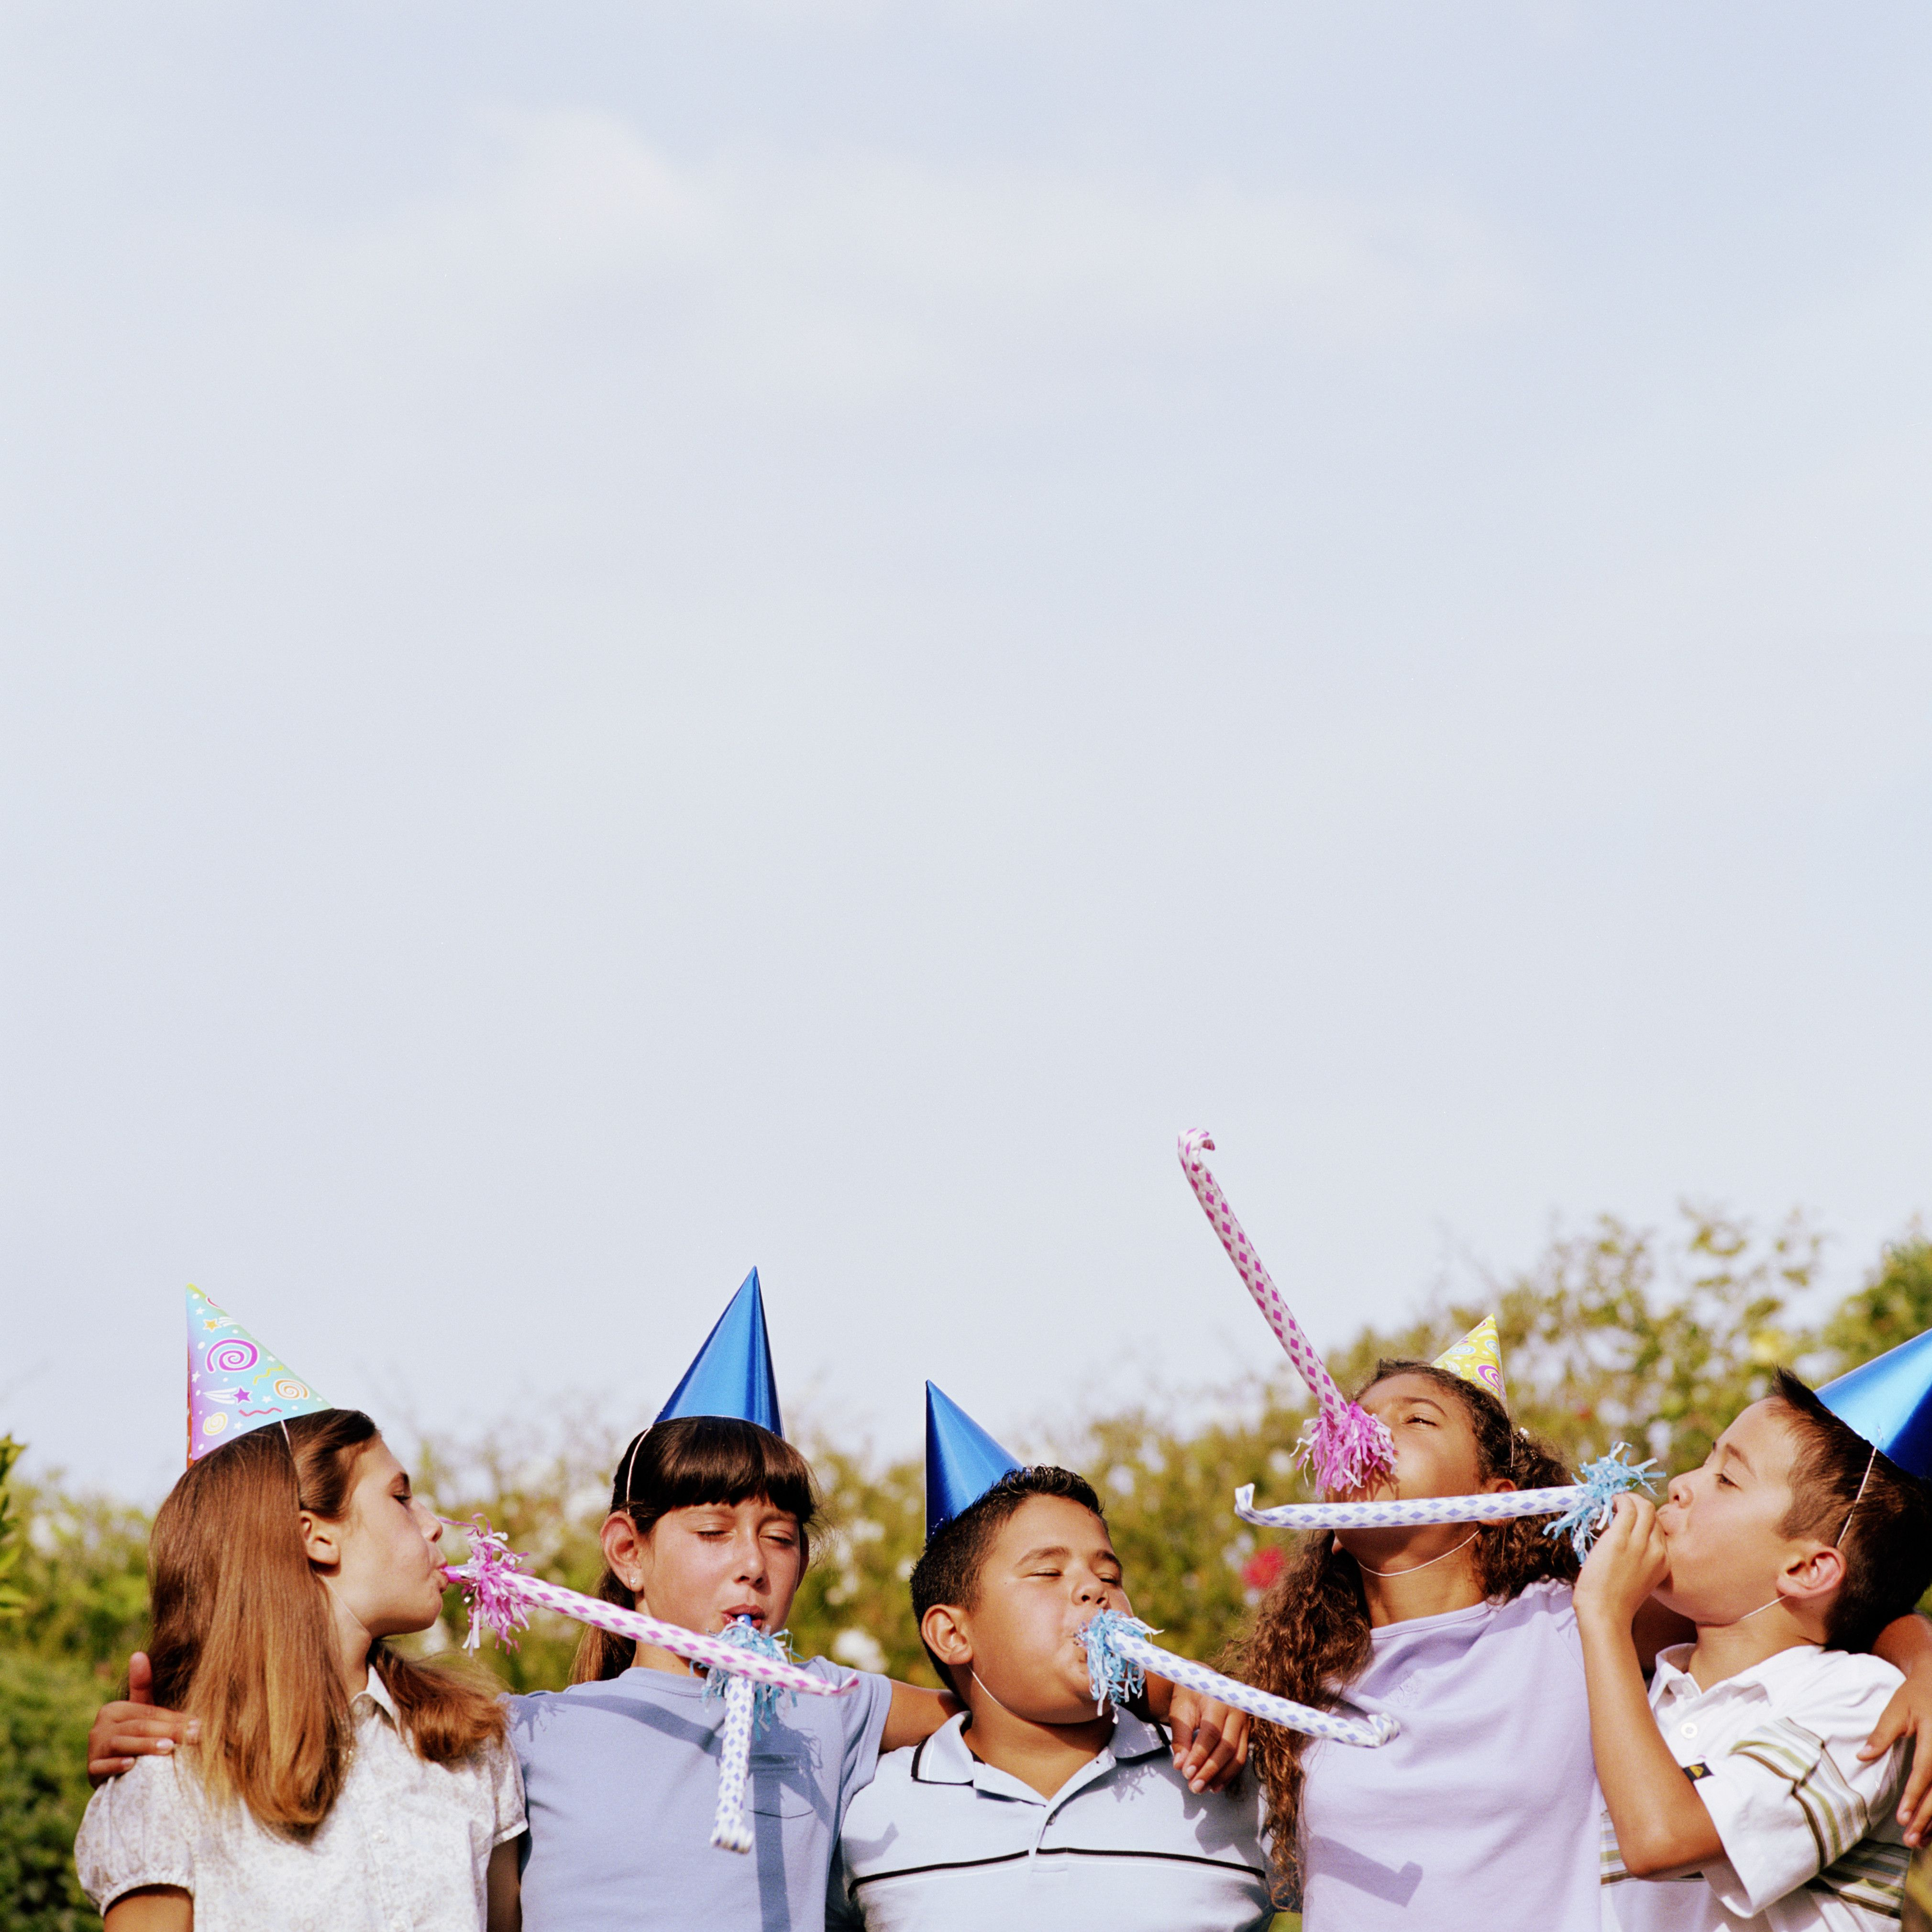 Group of children in party hats blowing party favors, high section